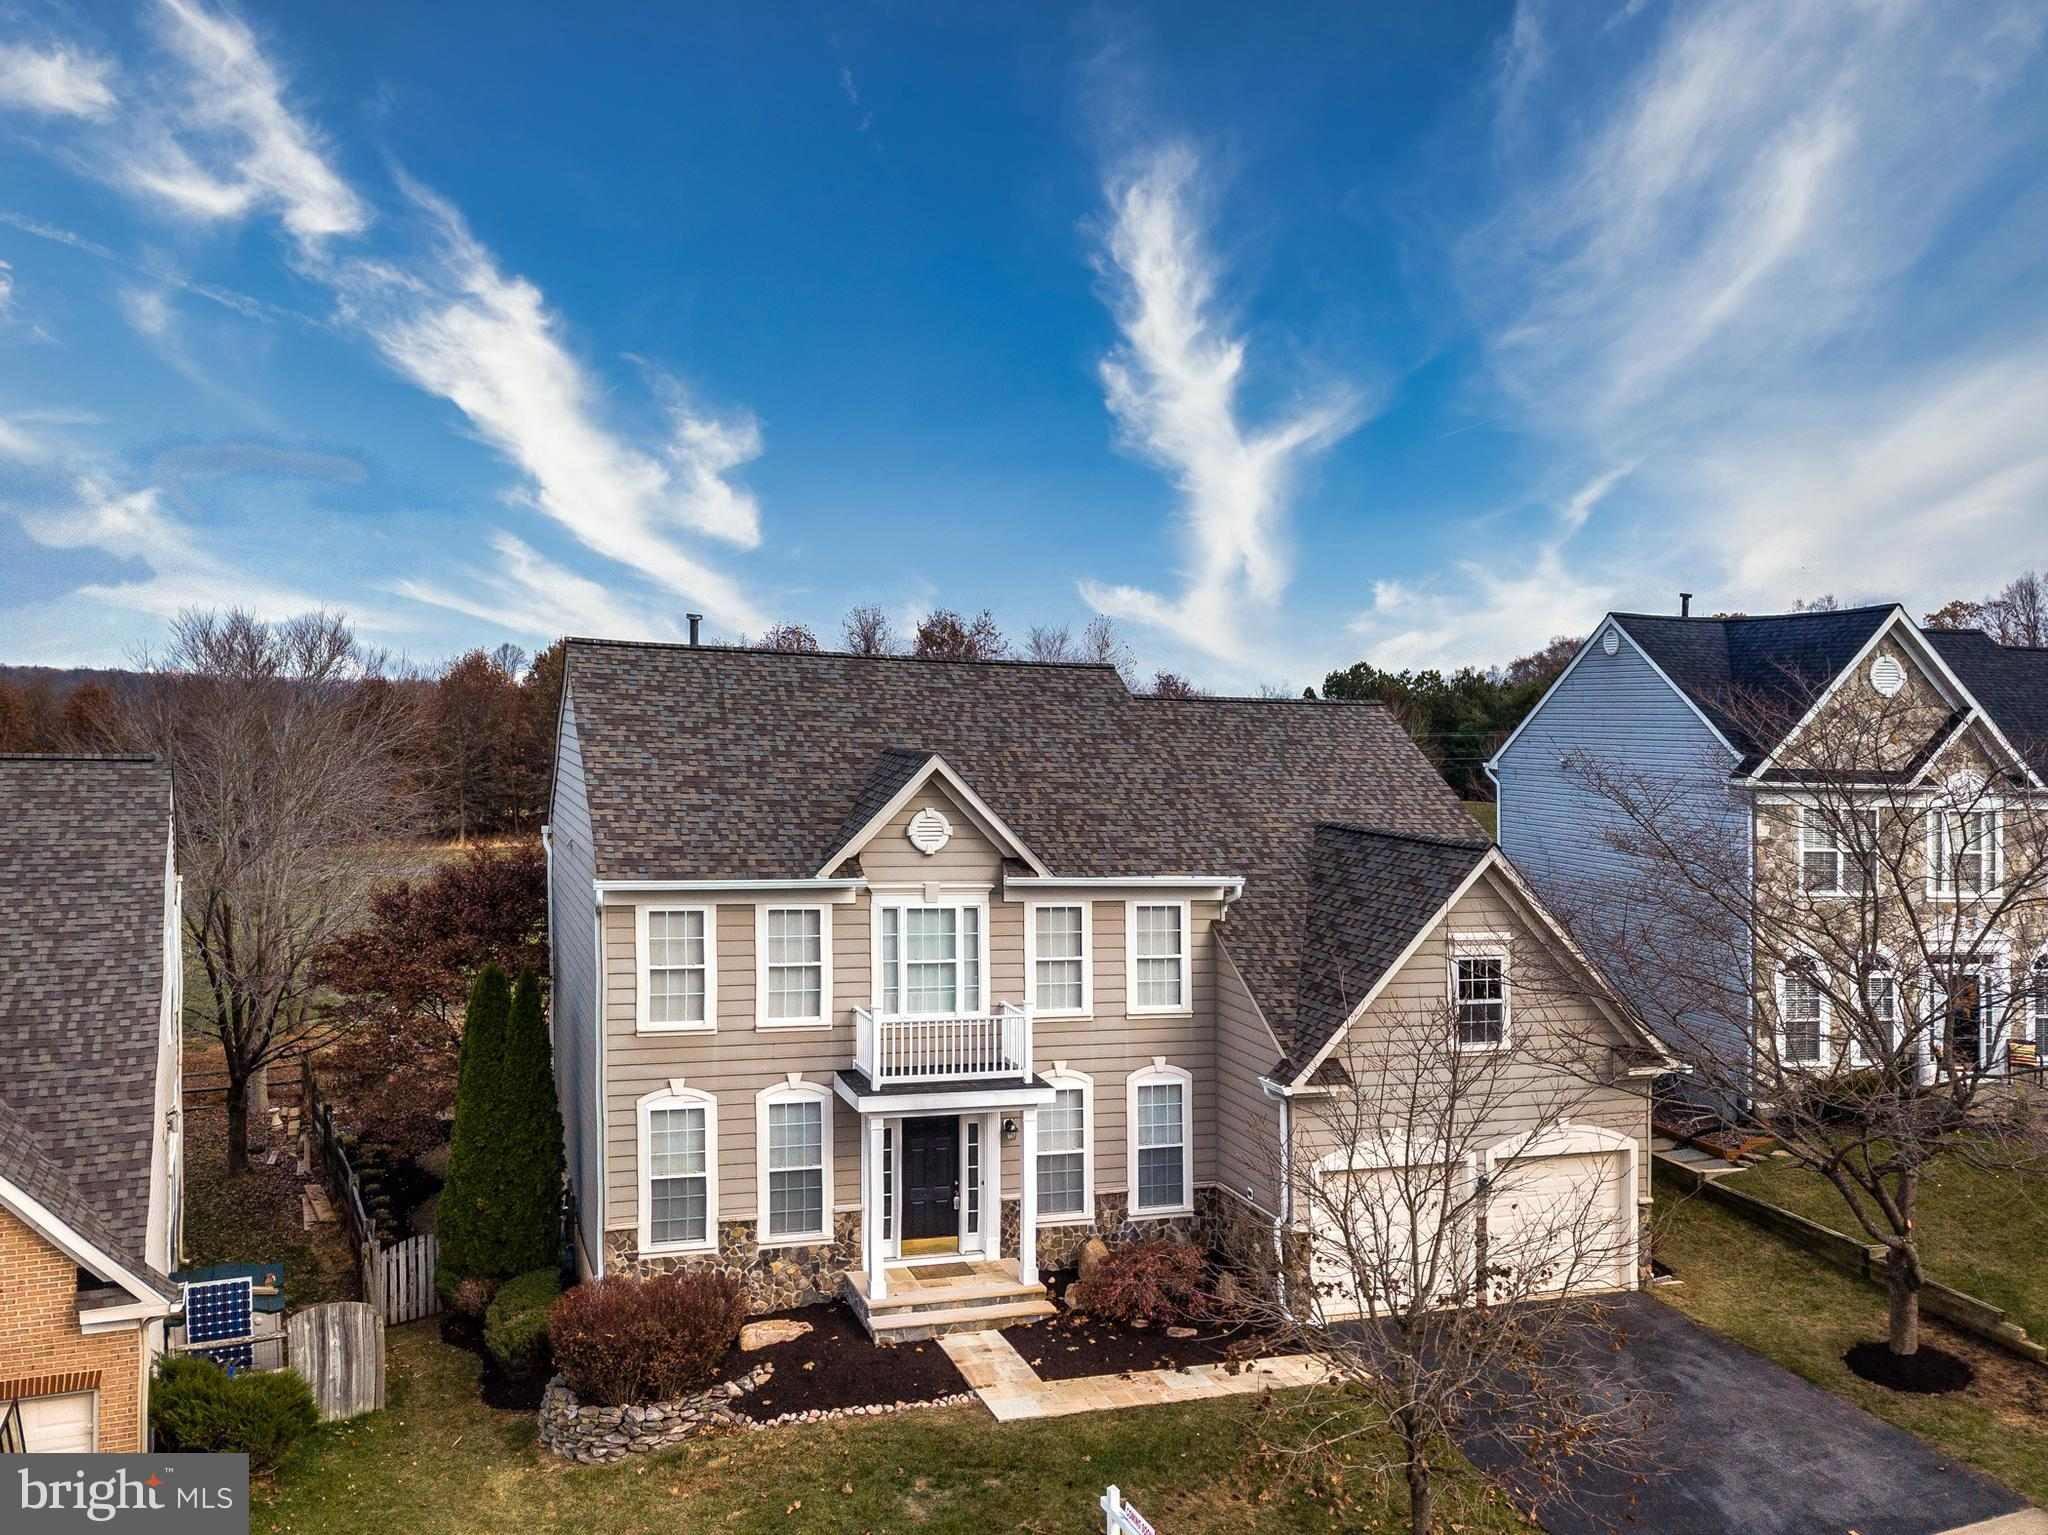 10520 CHESTER WAY, WOODSTOCK, MD 21163